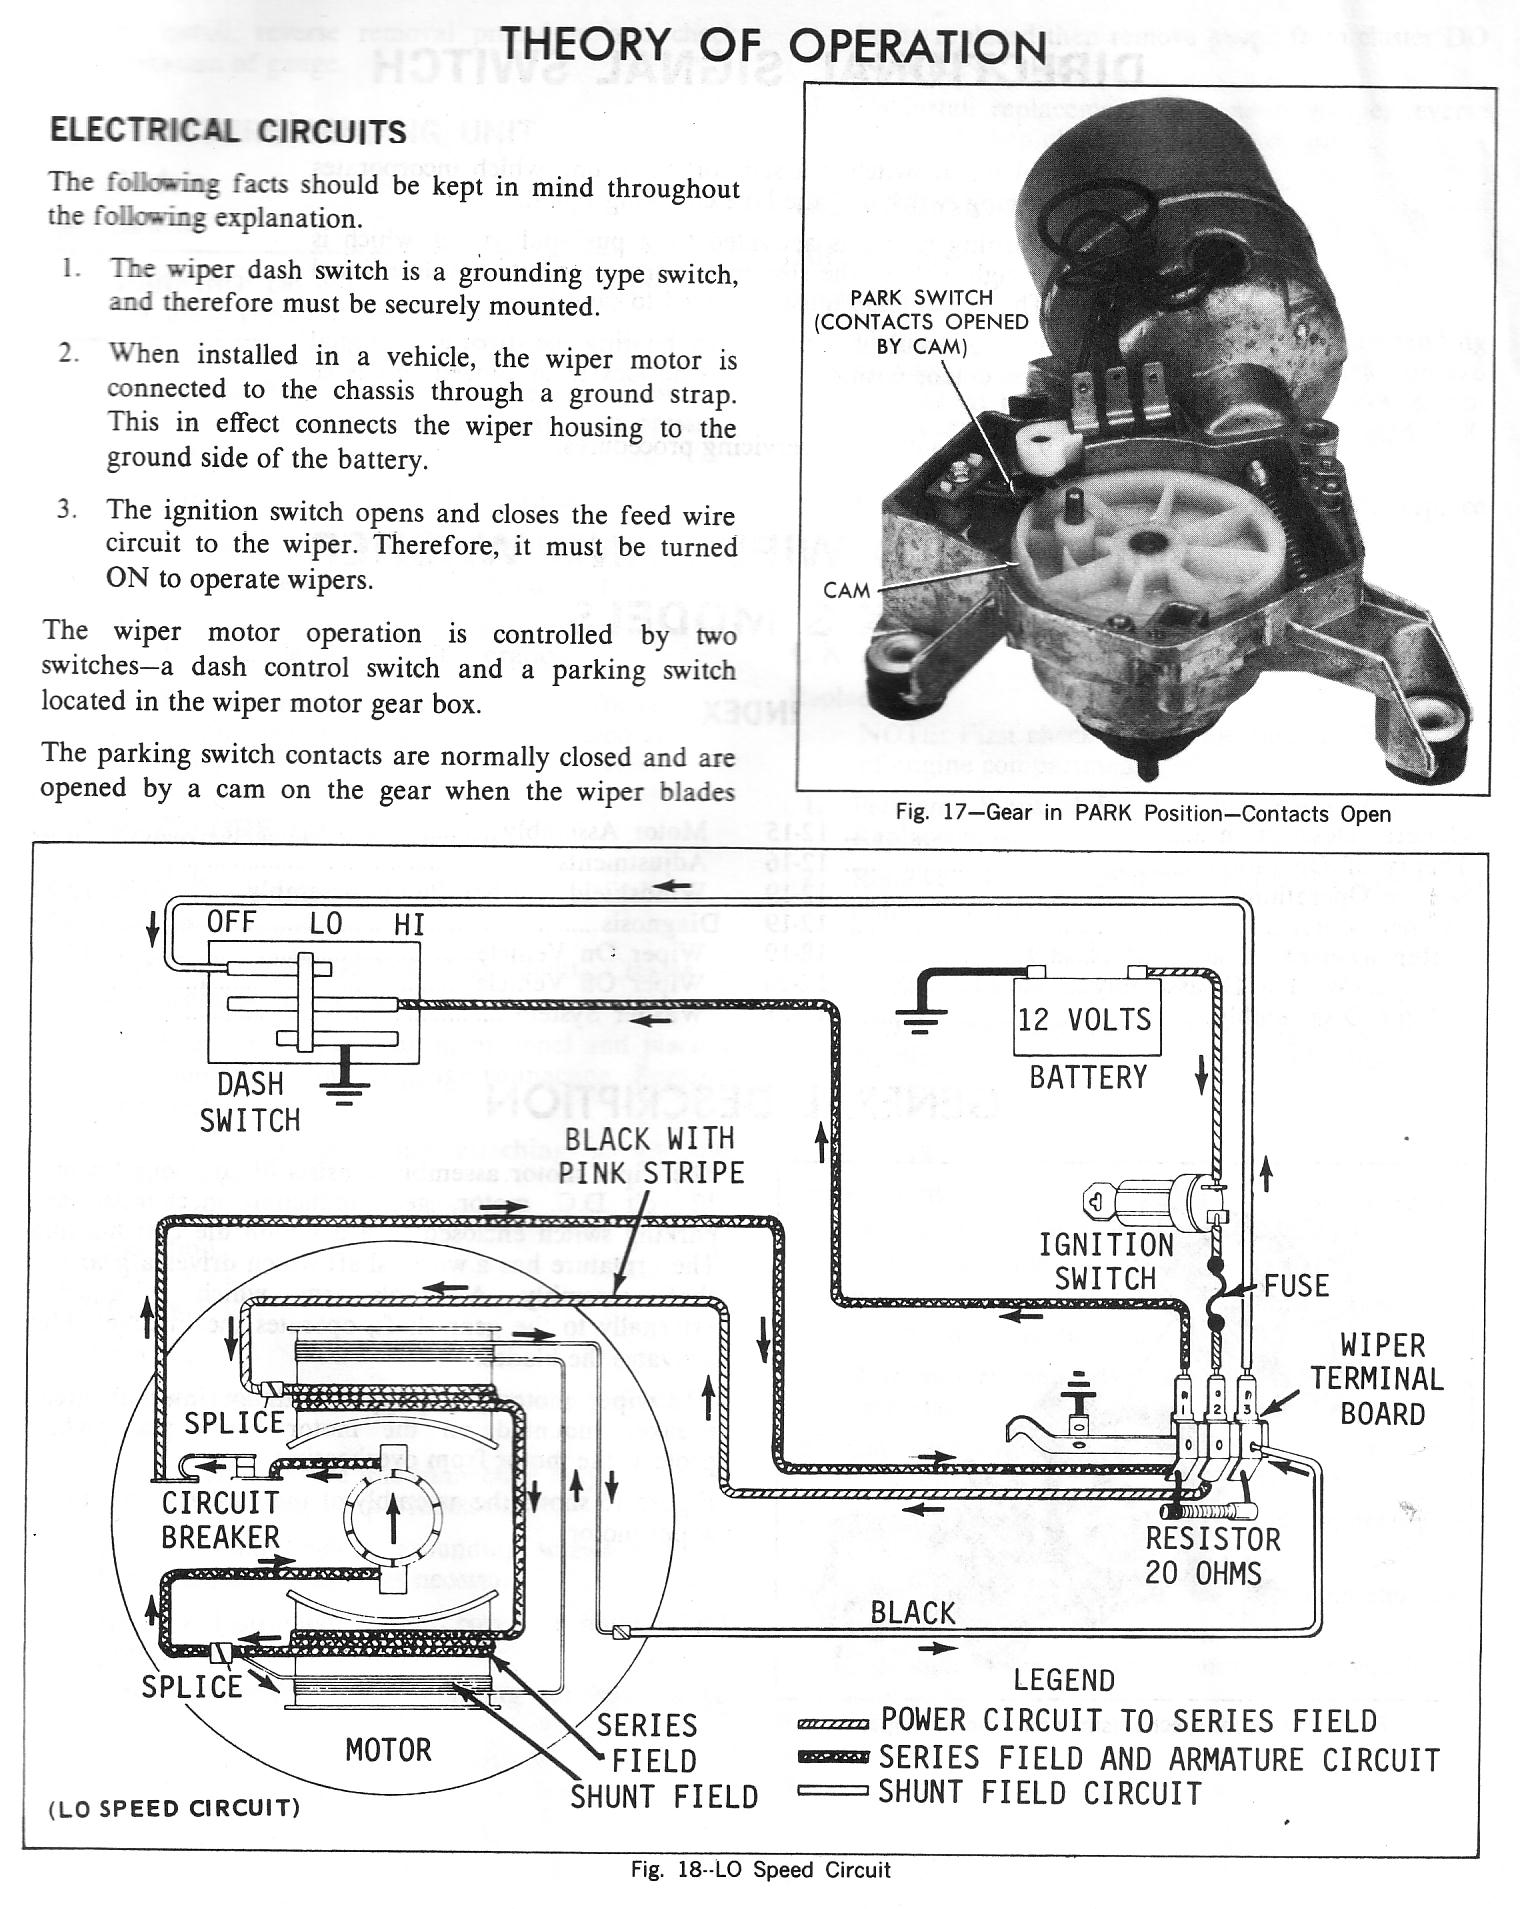 [DIAGRAM] 1986 Chevy Truck Wiper Motor Wiring Diagram FULL